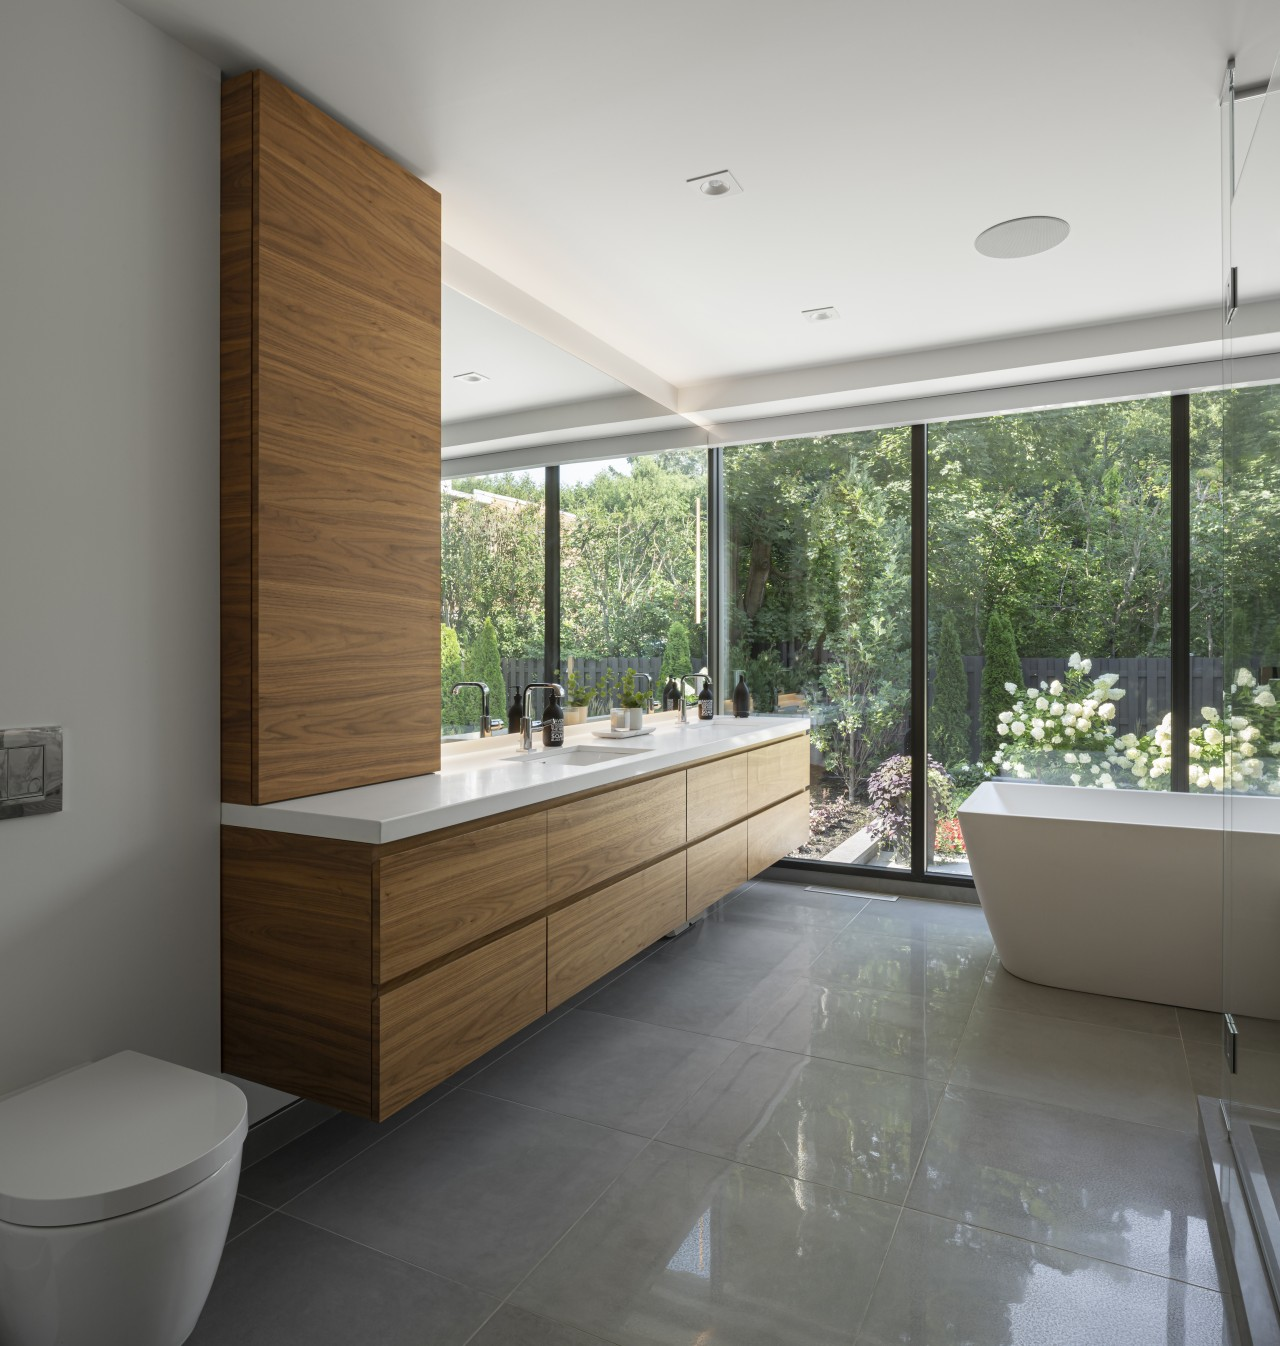 Soaking in the scenery from the freestanding tub